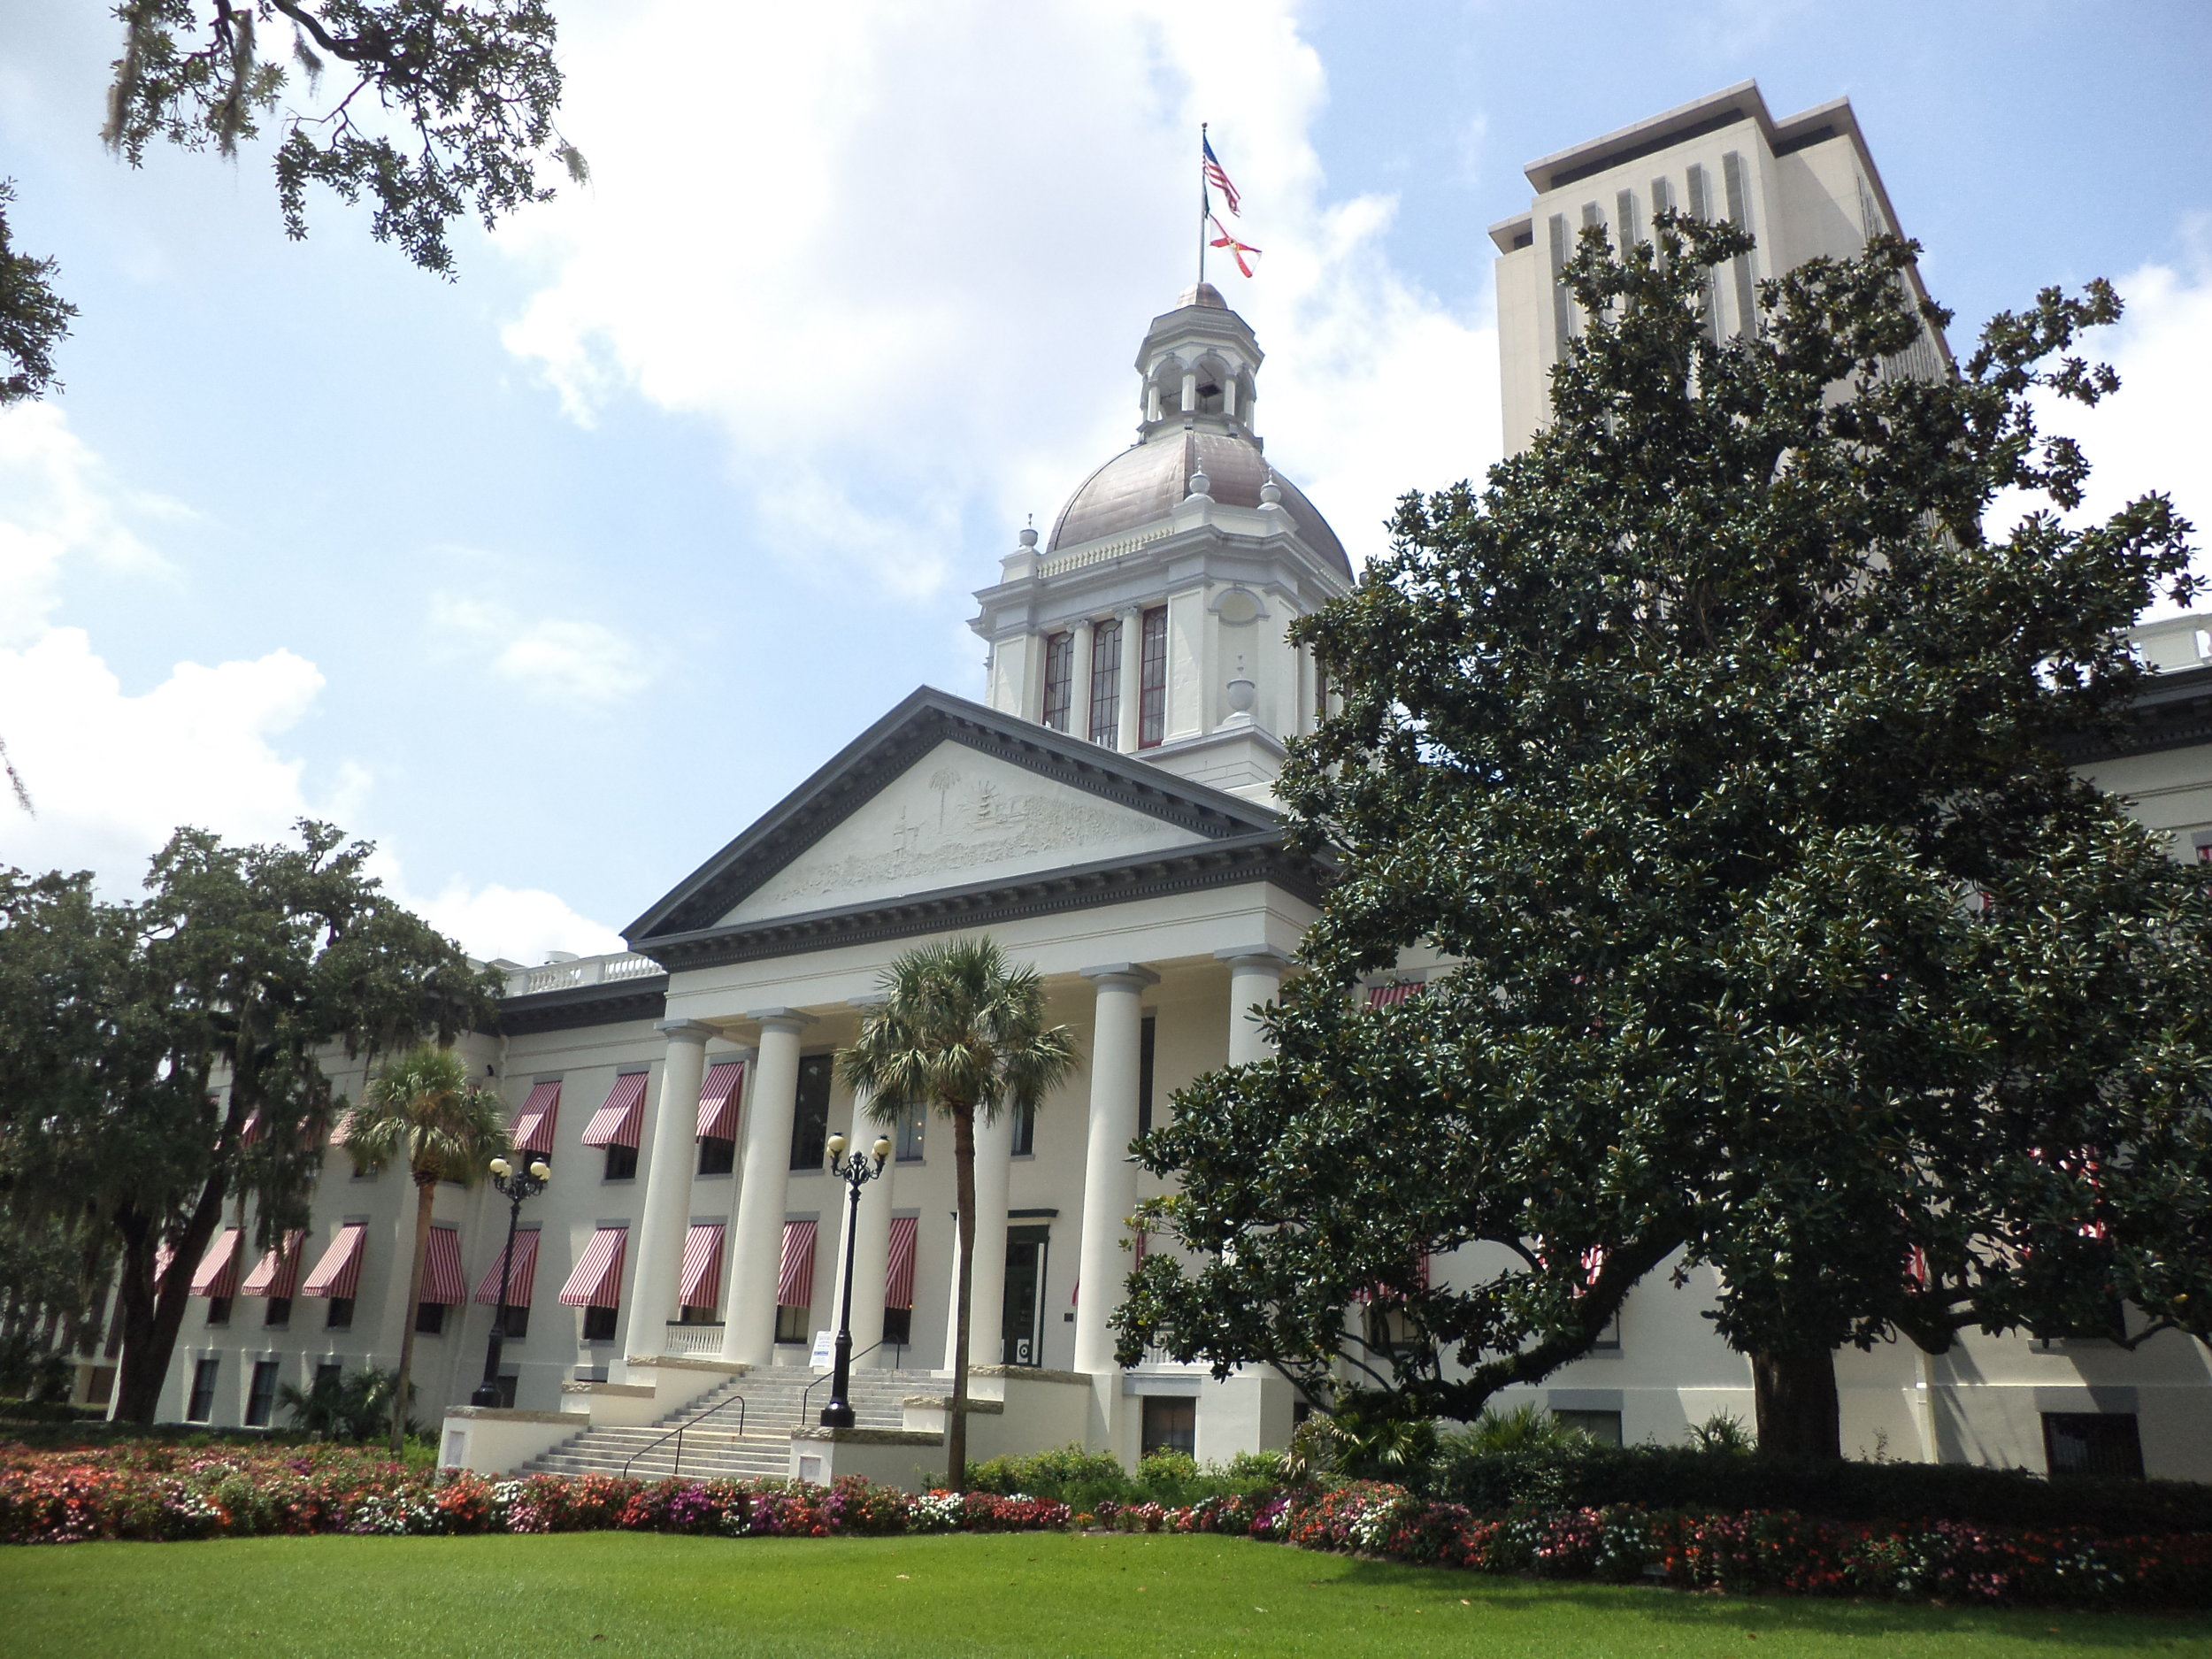 Florida's_Historic_Capitol_and_Florida_State_Capitol_1.jpeg